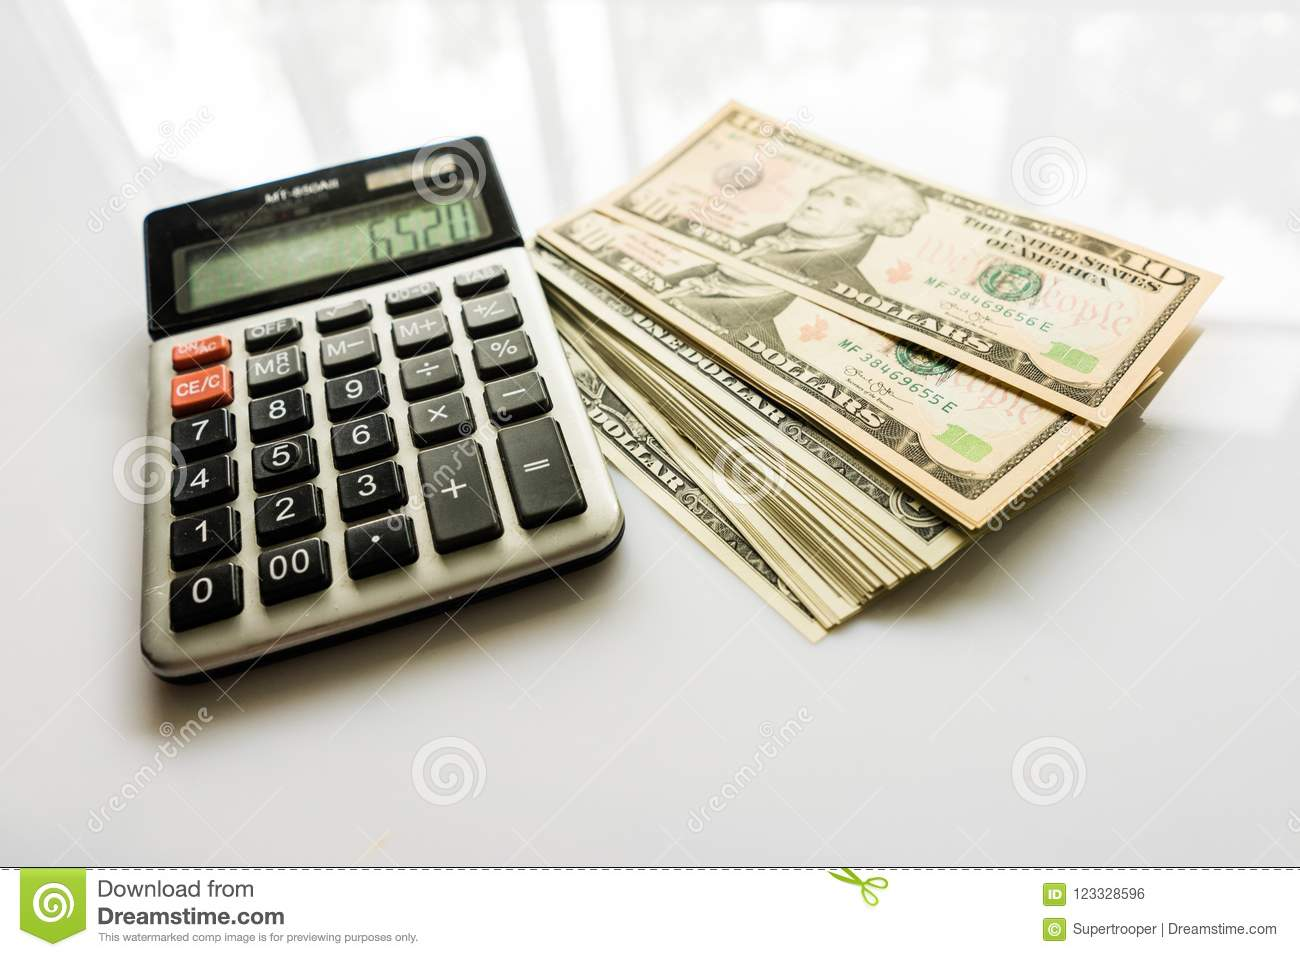 Female hand holding a calculator, and us money on the background.